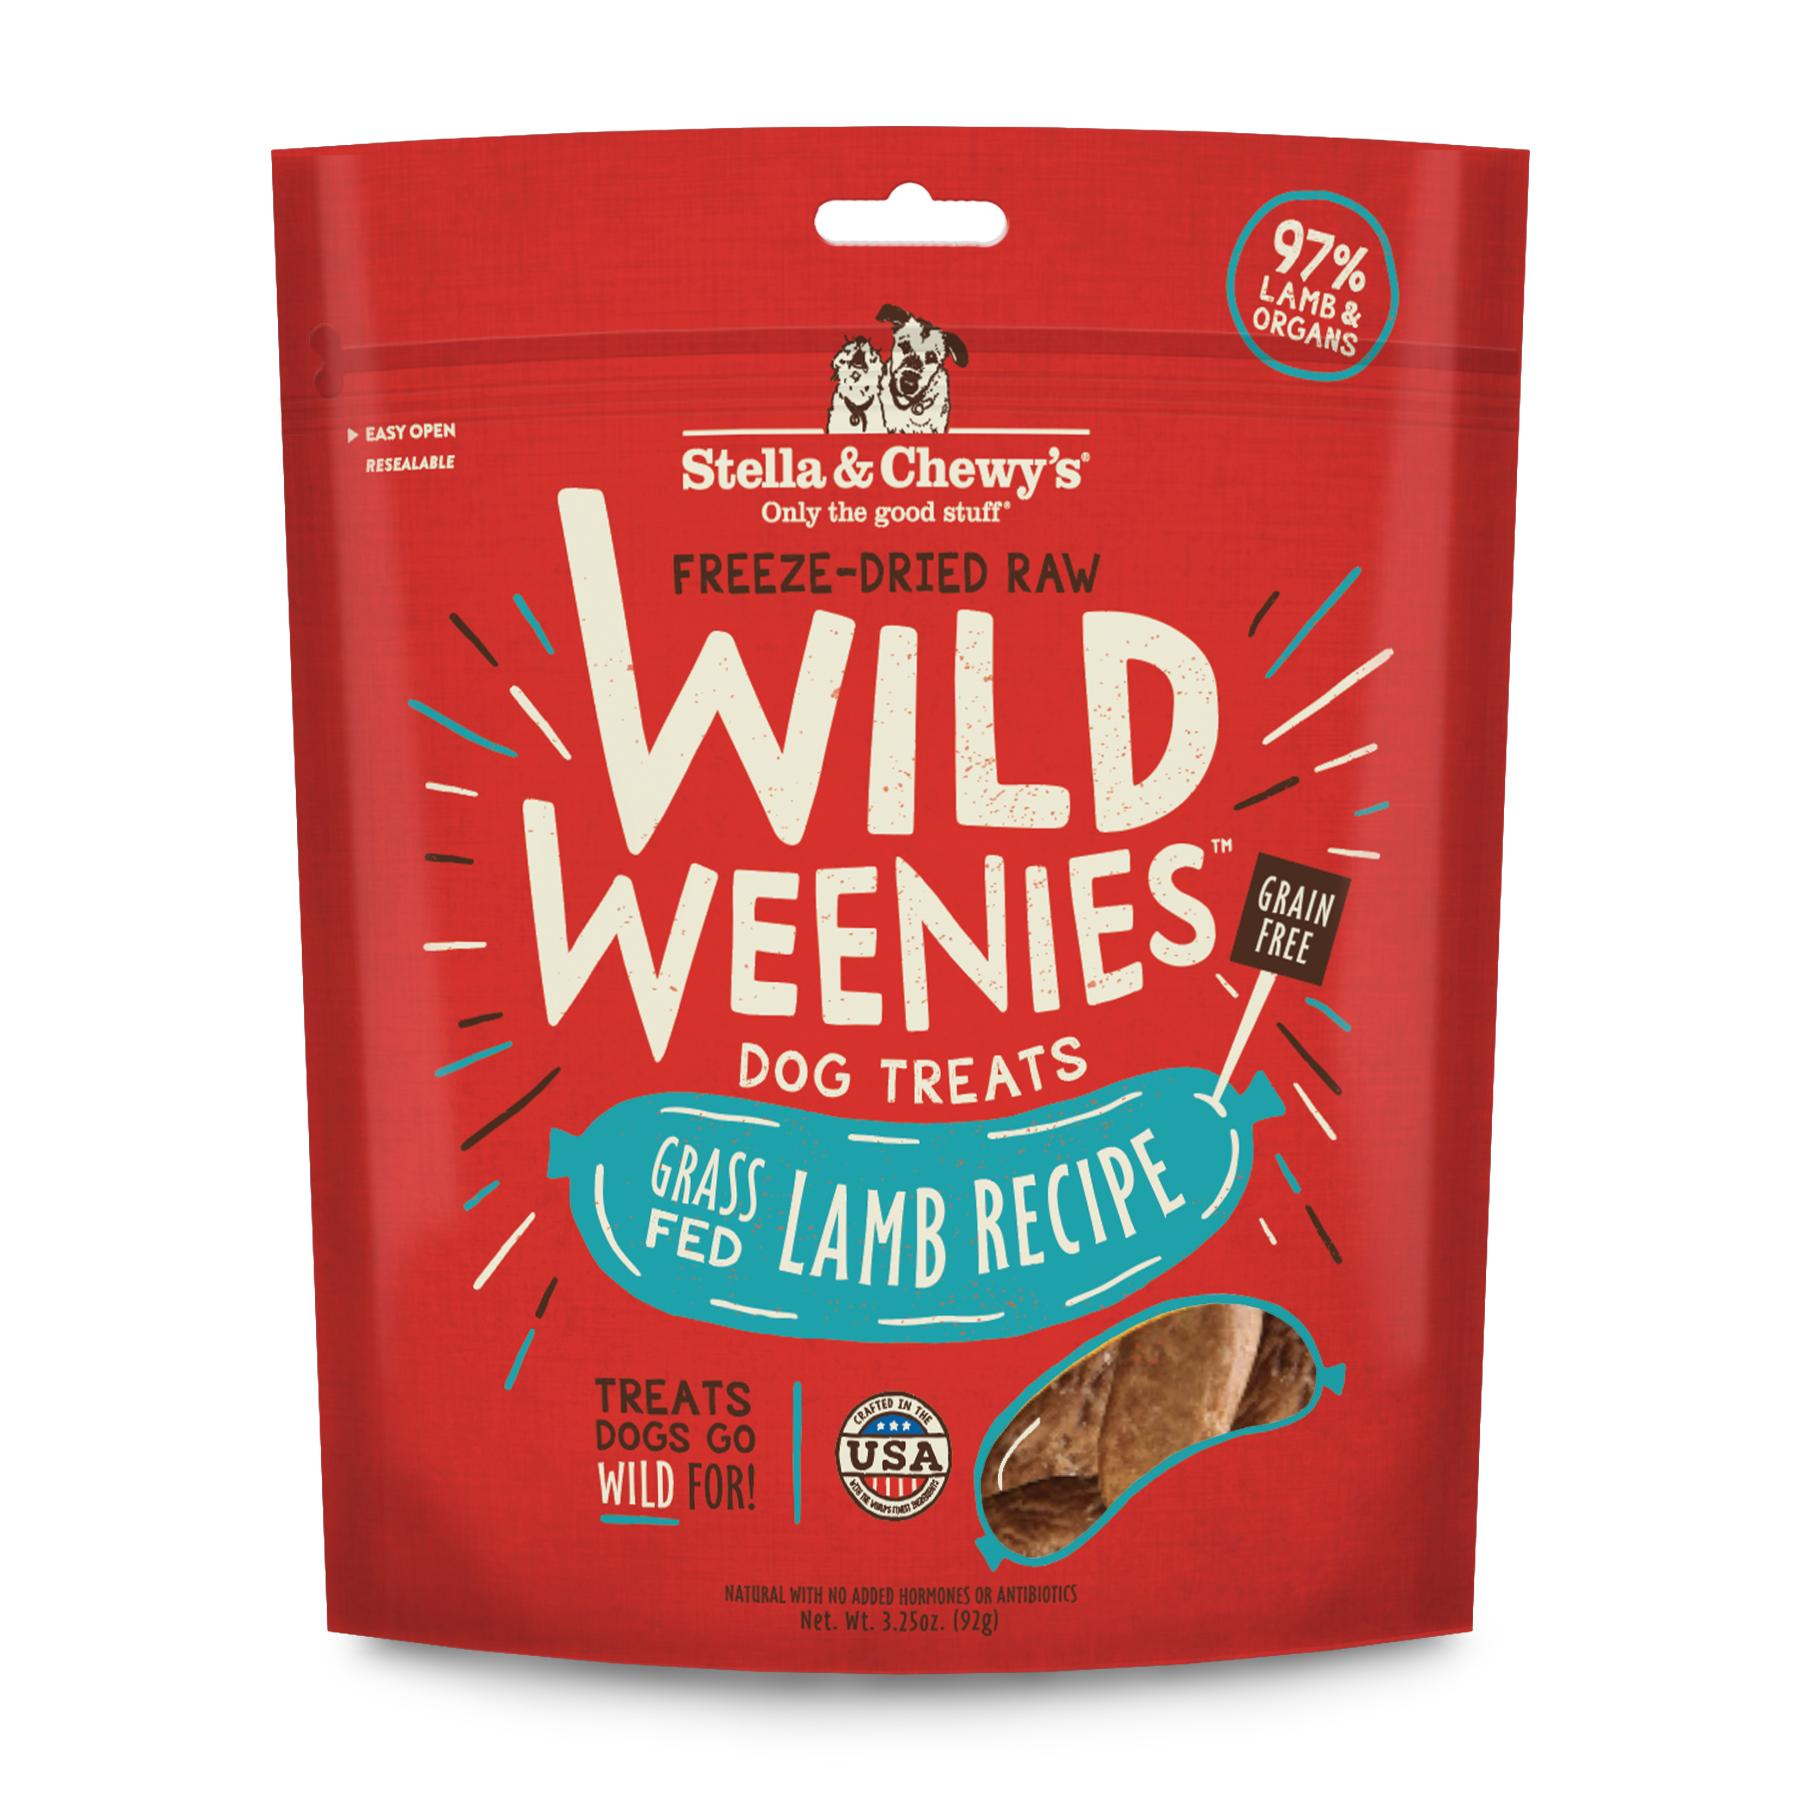 Stella & Chewy's Wild Weenies Grass-Fed Lamb Recipe Freeze-Dried Dog Treats, 3.25-oz